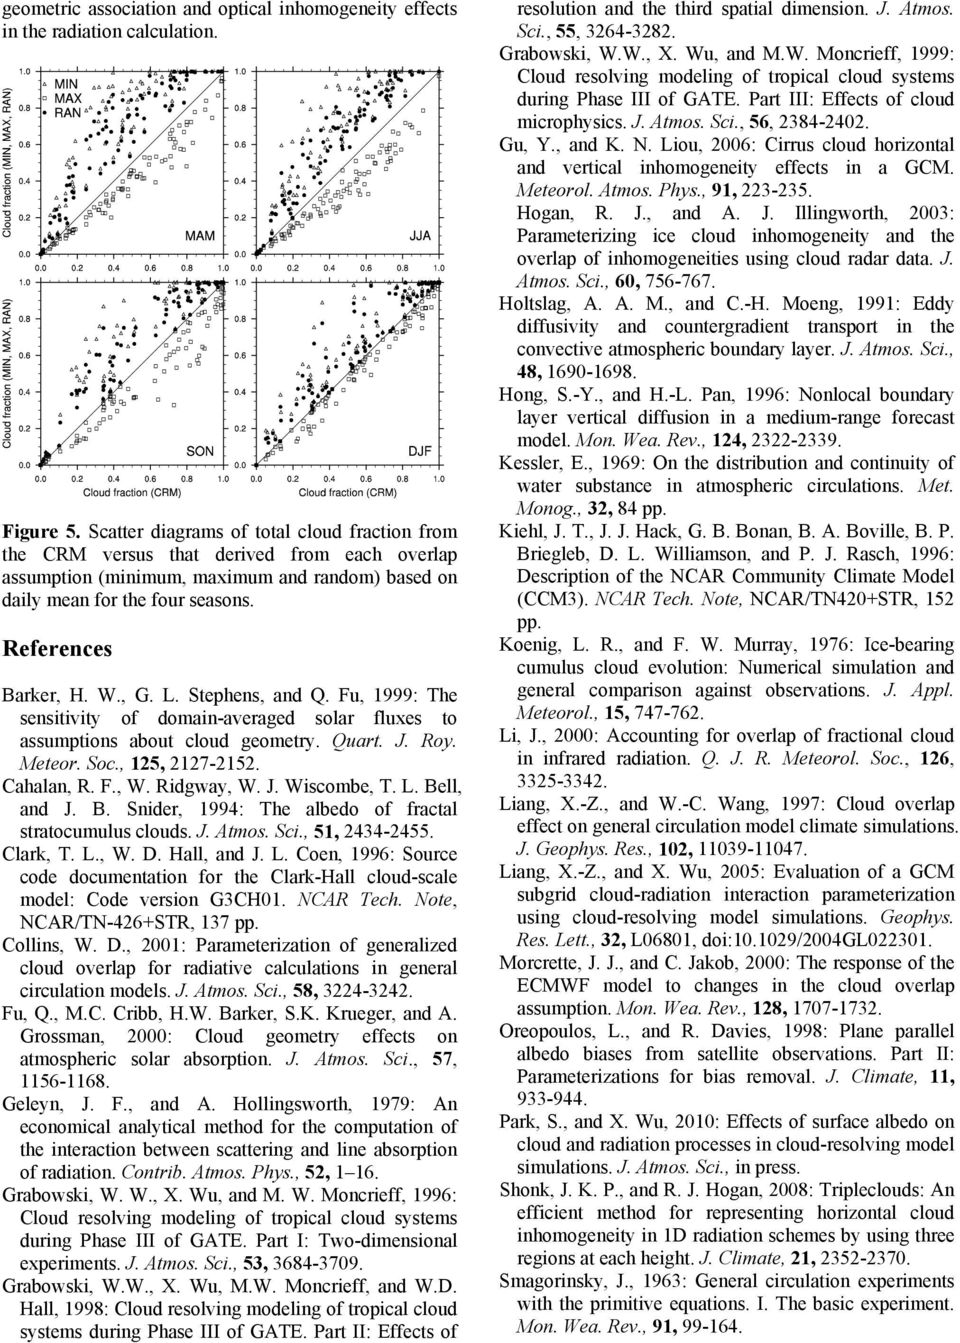 , G. L. Stephens, and Q. Fu, 1999: The sensitivity of domain-averaged solar fluxes to assumptions about cloud geometry. Quart. J. Roy. Meteor. Soc., 125, 2127-2152. Cahalan, R. F., W. Ridgway, W. J. Wiscombe, T.